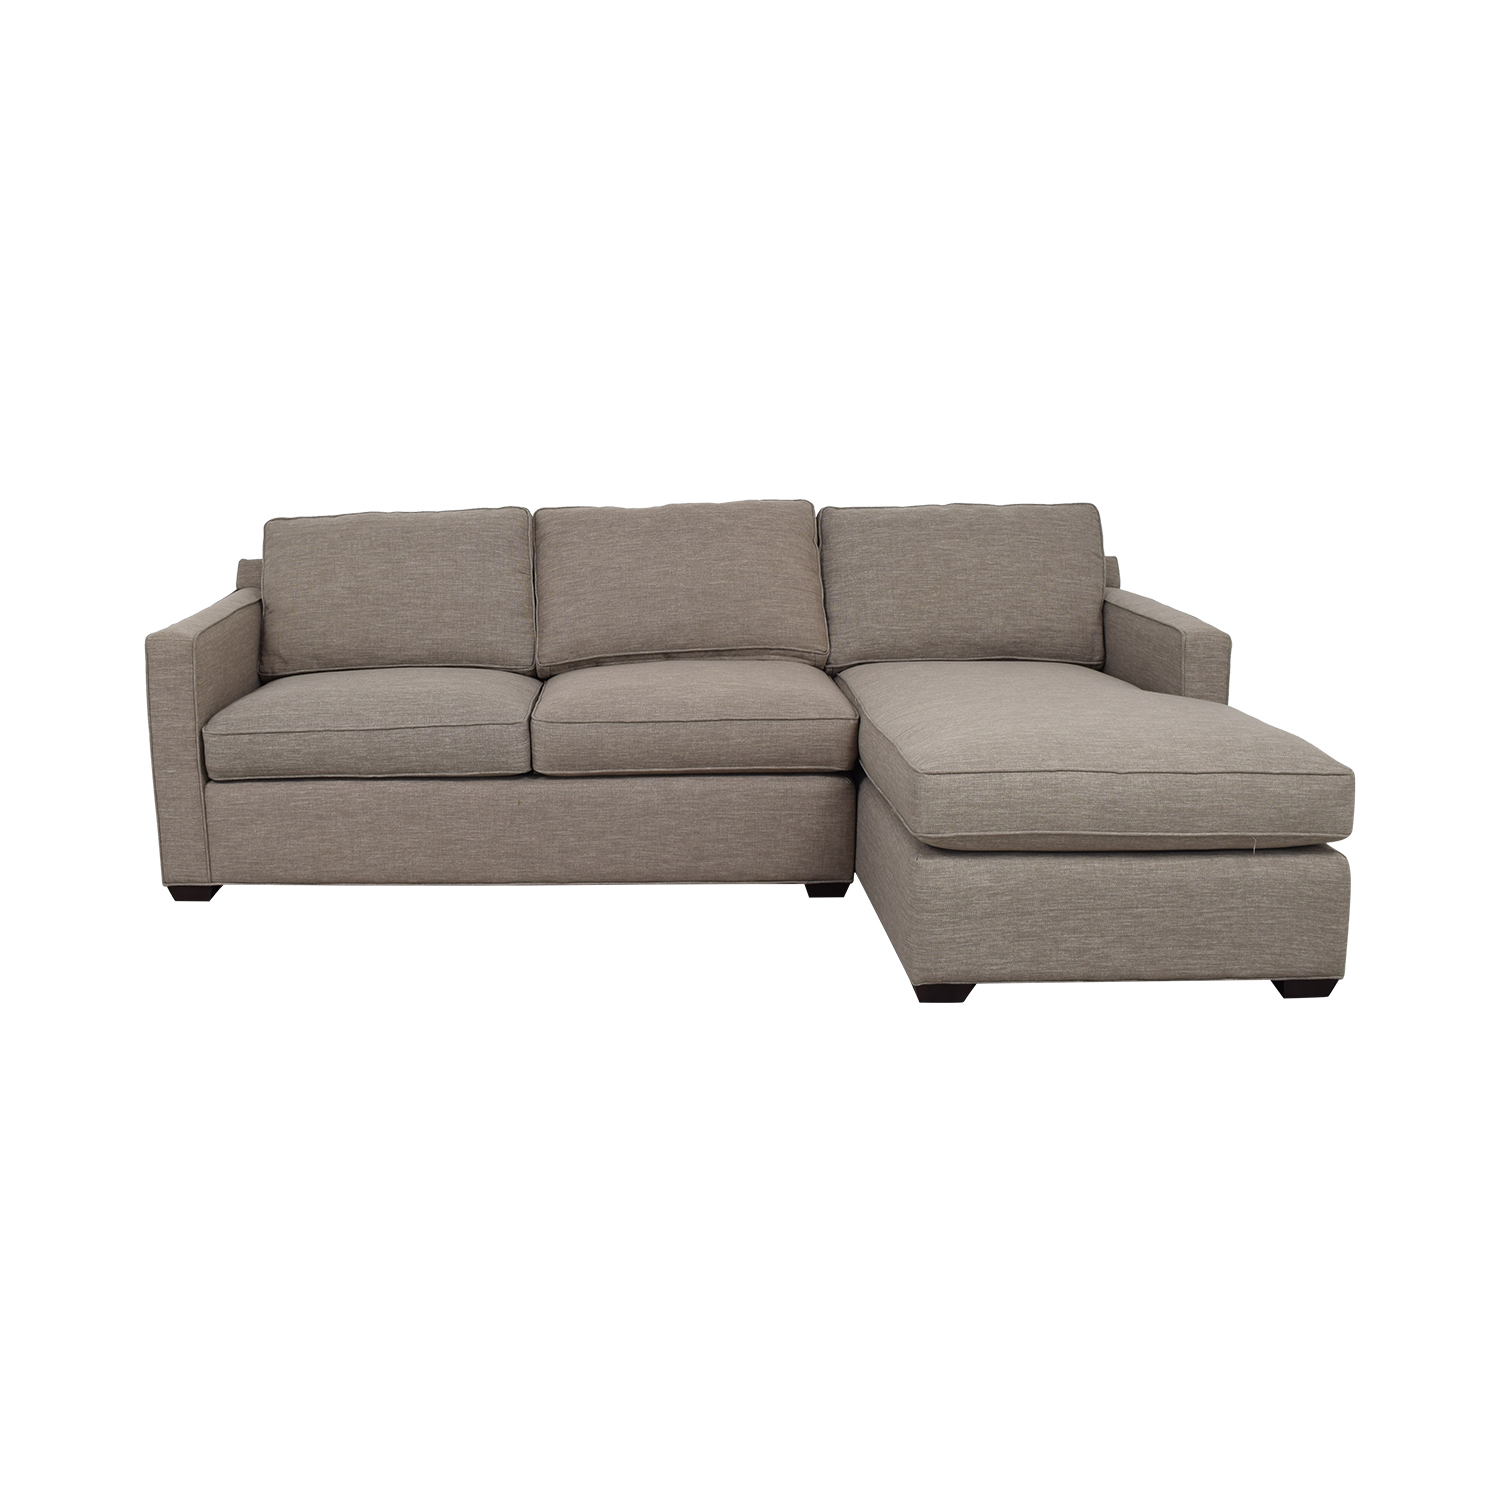 Crate & Barrel Crate & Barrel Grey Chaise Sectional